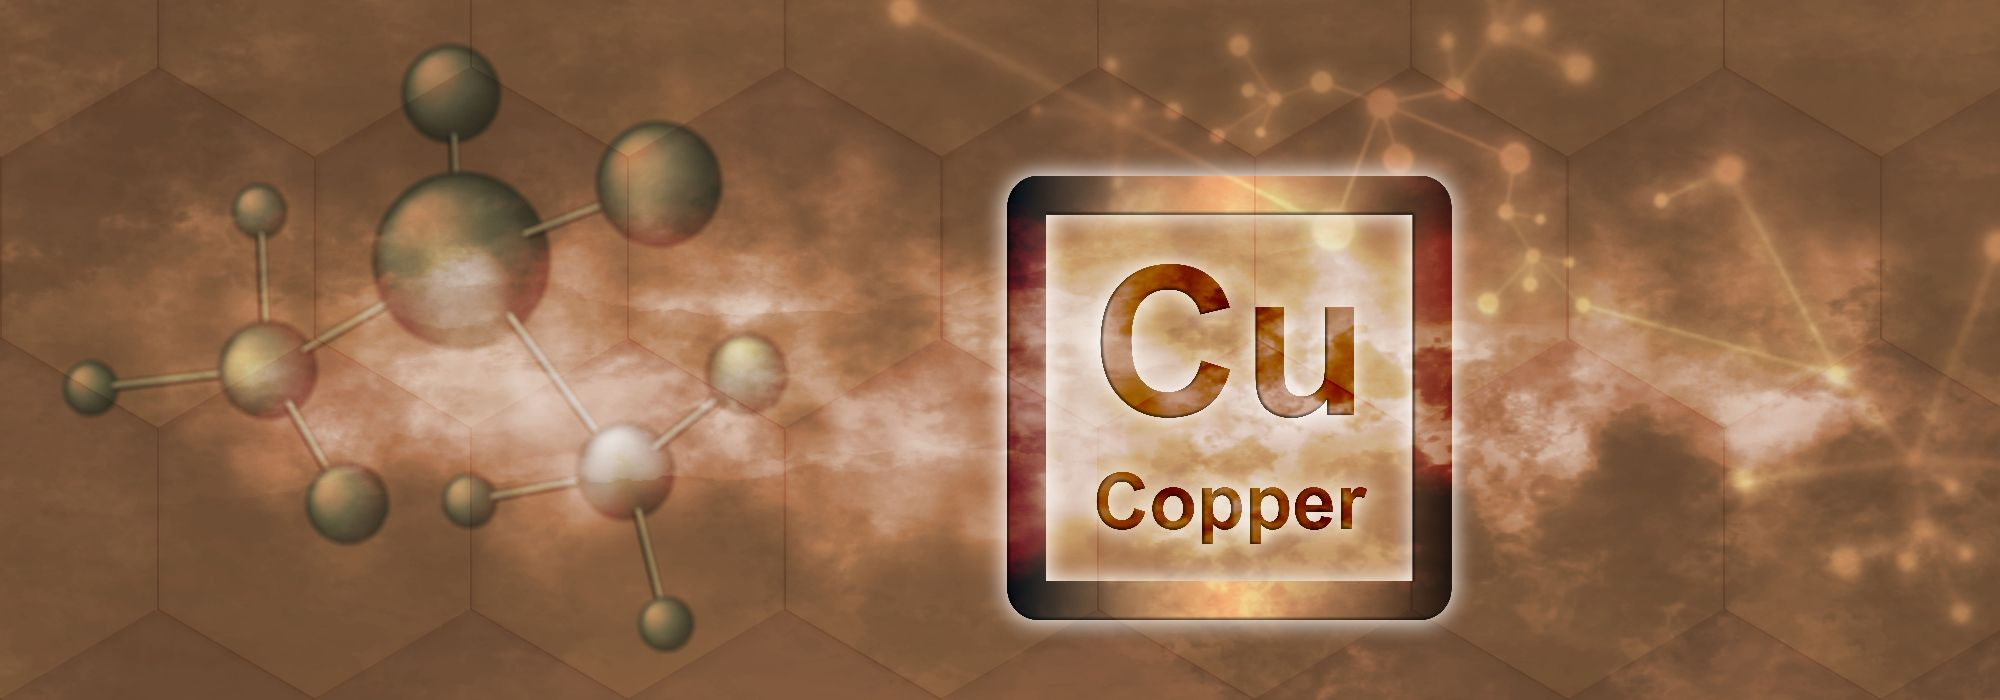 copper antimicrobial